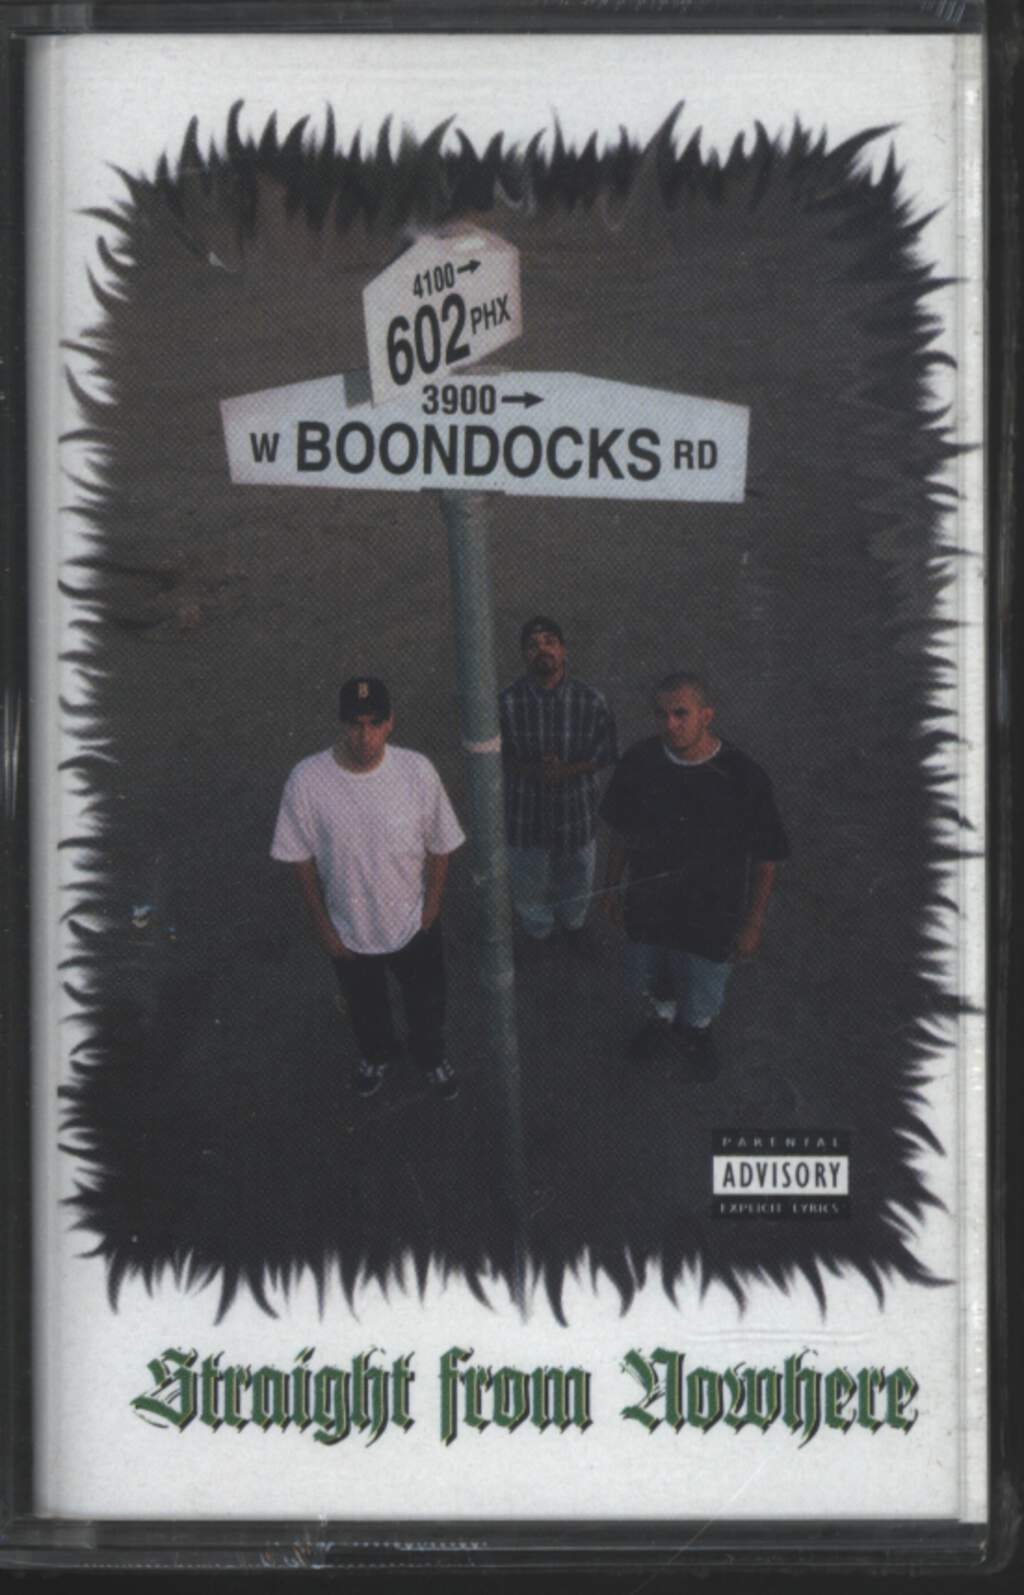 Boondocks: Straight From Nowhere, Tape